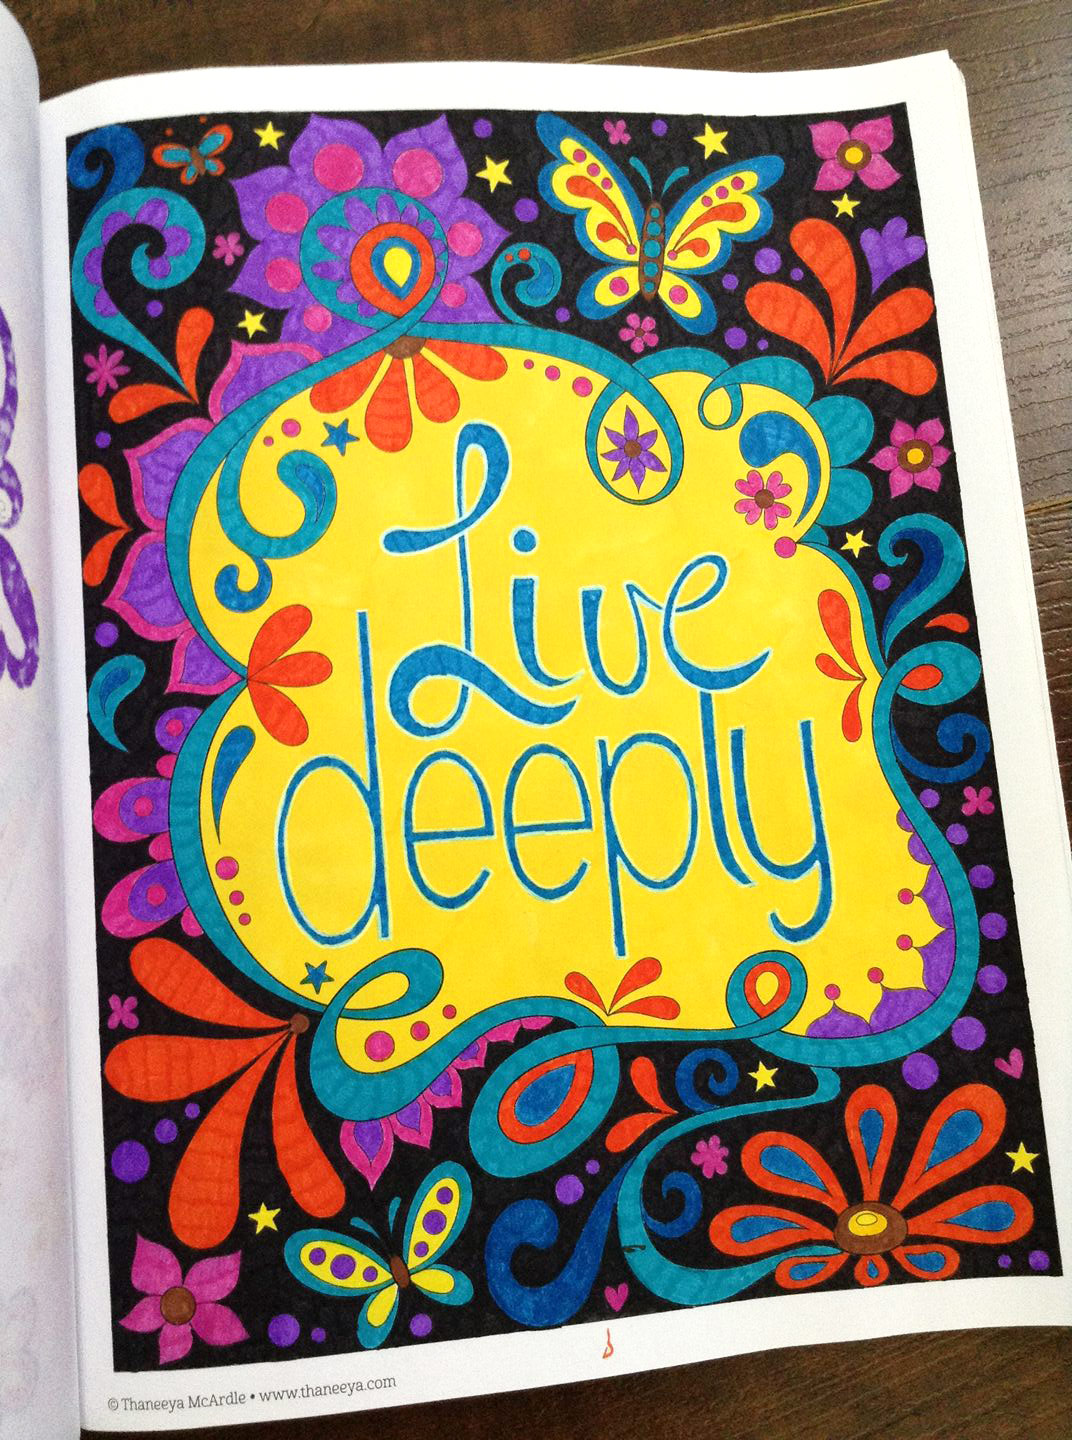 live-deeply-coloring-page-by-Thaneeya-McArdle-colored-by-TammyM.jpg